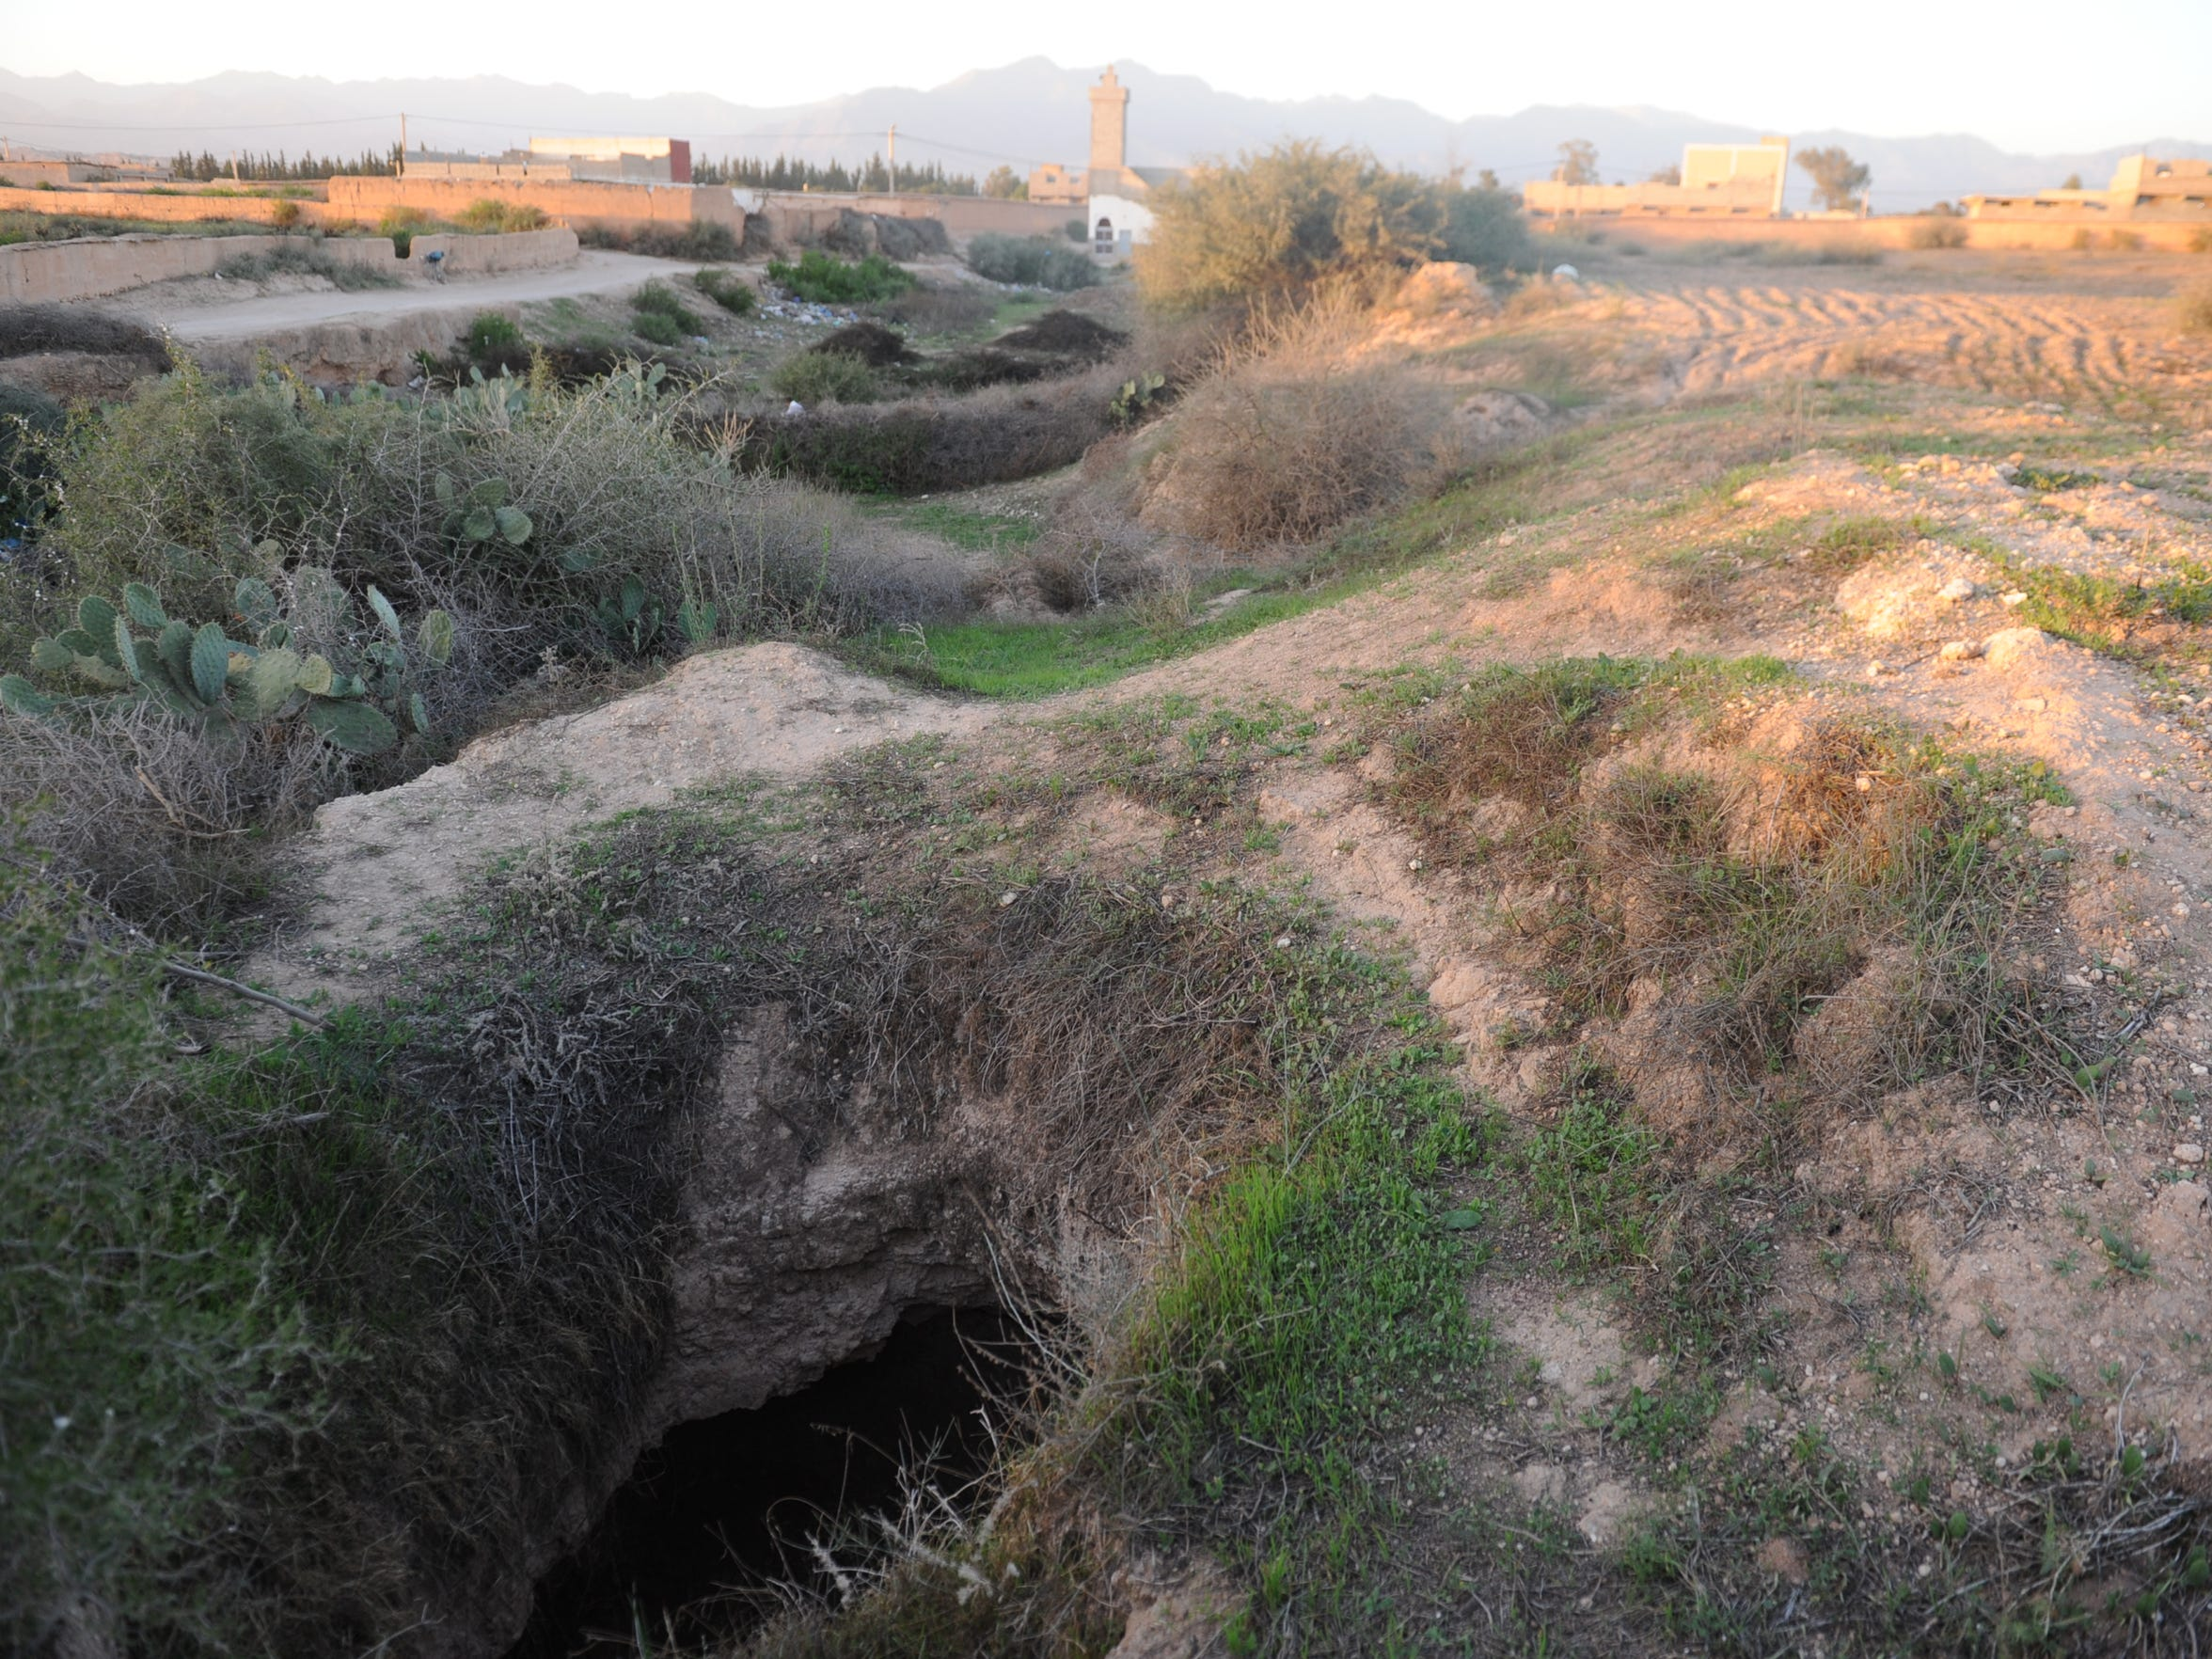 Moroccans once used underground irrigation tunnels called khettaras to capture and guide flows of groundwater to their fields. The khettaras have gone dry in many areas as groundwater levels have fallen. This hole in the ground is part of a system of khettaras in a village near Oulad Berhil that hasn''t flowed in years.